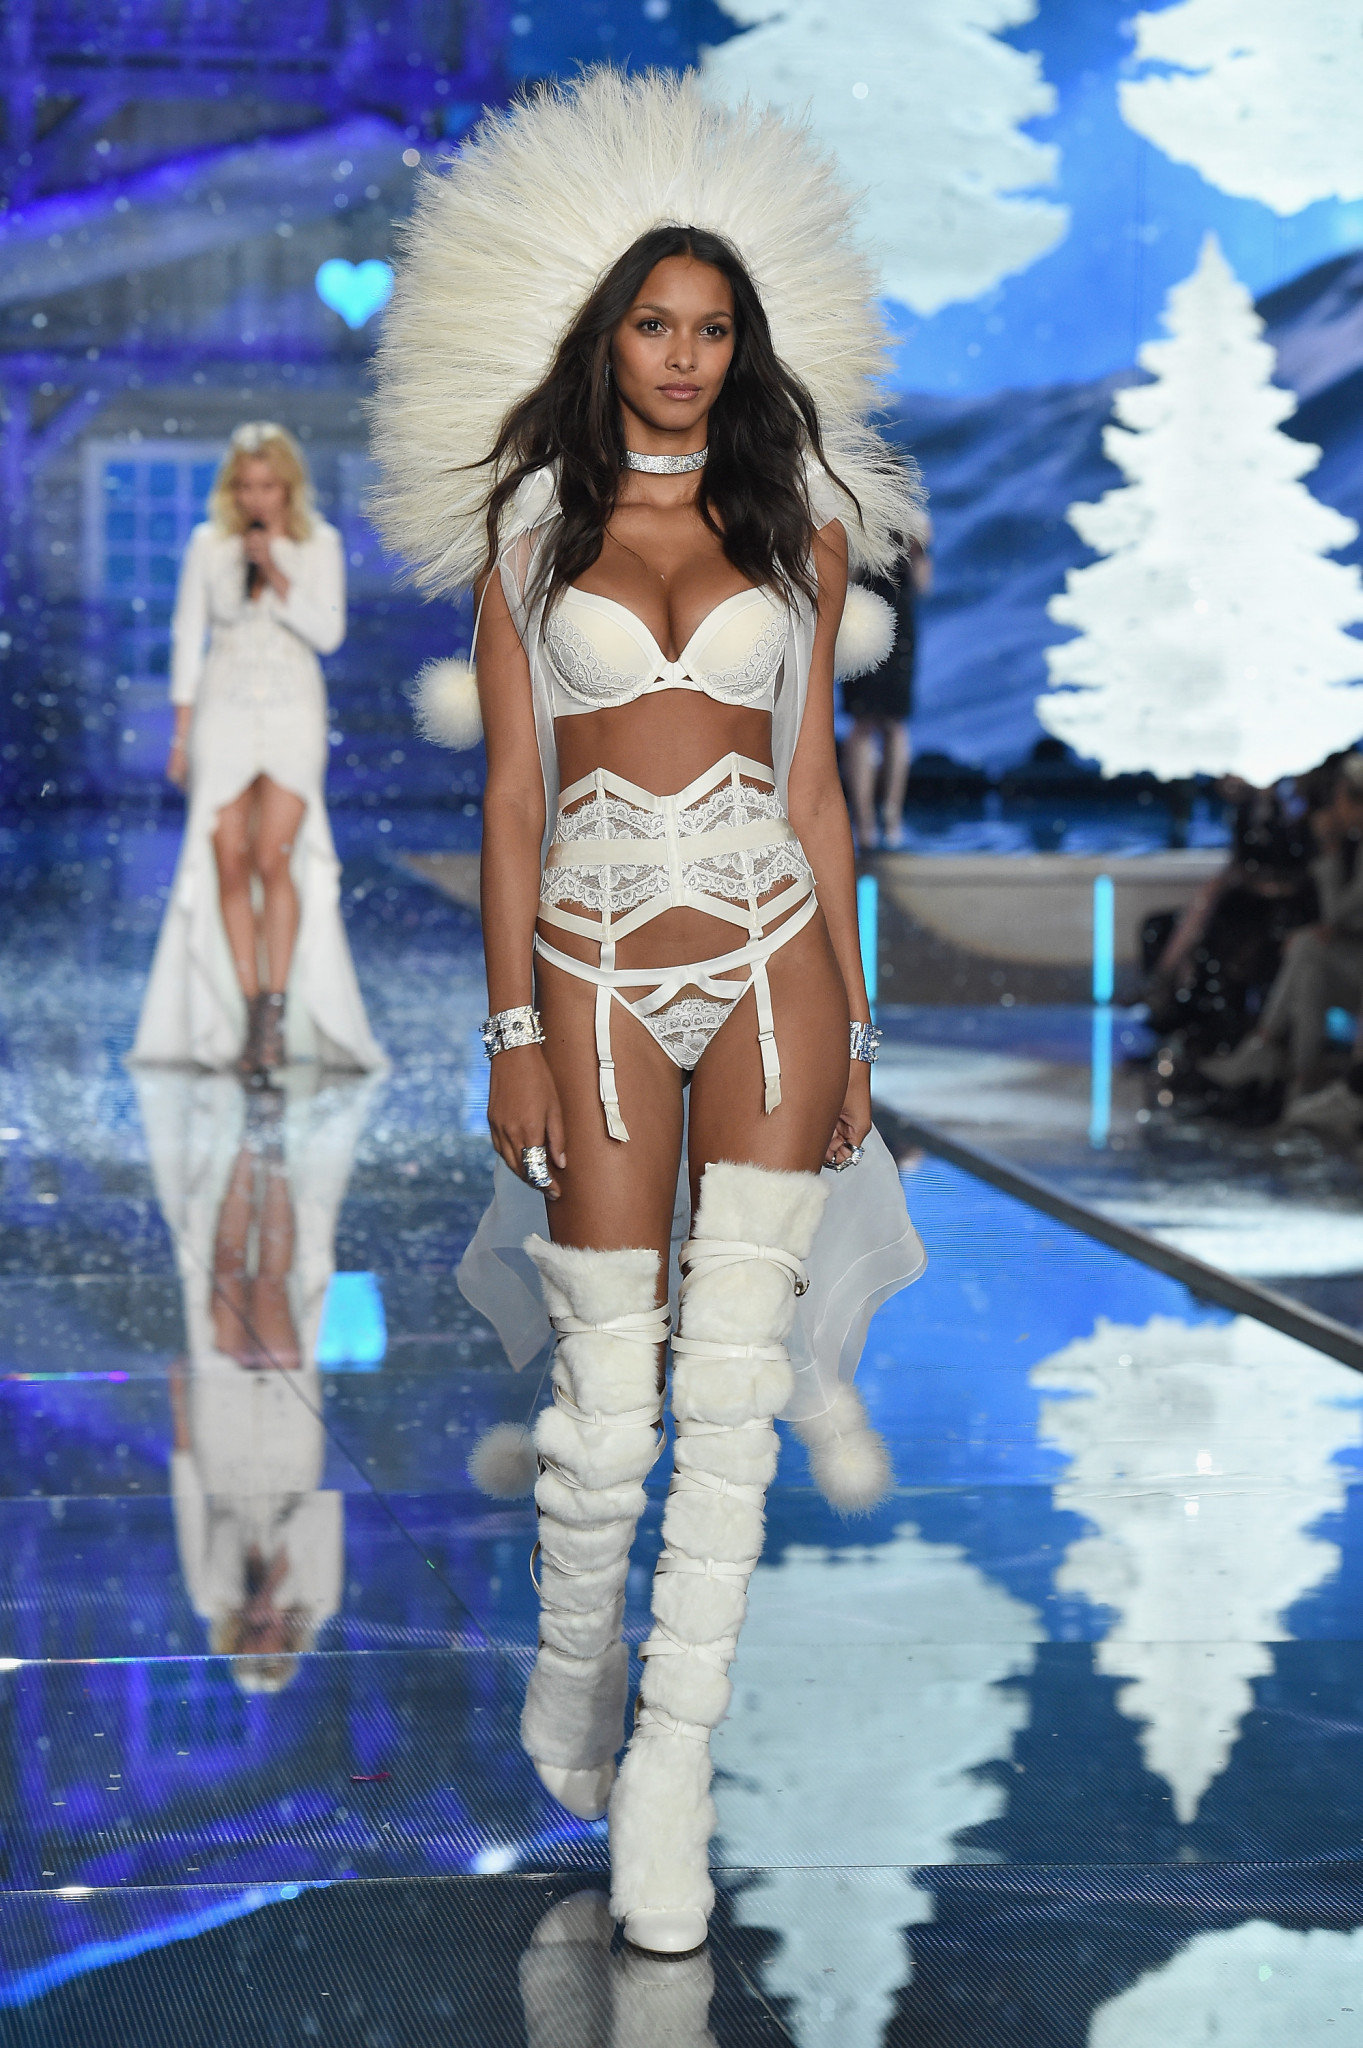 NEW YORK, NY - NOVEMBER 10: Model and New Victoria's Secret Angel Lais Ribeiro from Brazil walks the runway during the 2015 Victoria's Secret Fashion Show at Lexington Avenue Armory on November 10, 2015 in New York City. (Photo by Dimitrios Kambouris/Getty Images for Victoria's Secret) *** Local Caption *** Lais Ribeiro